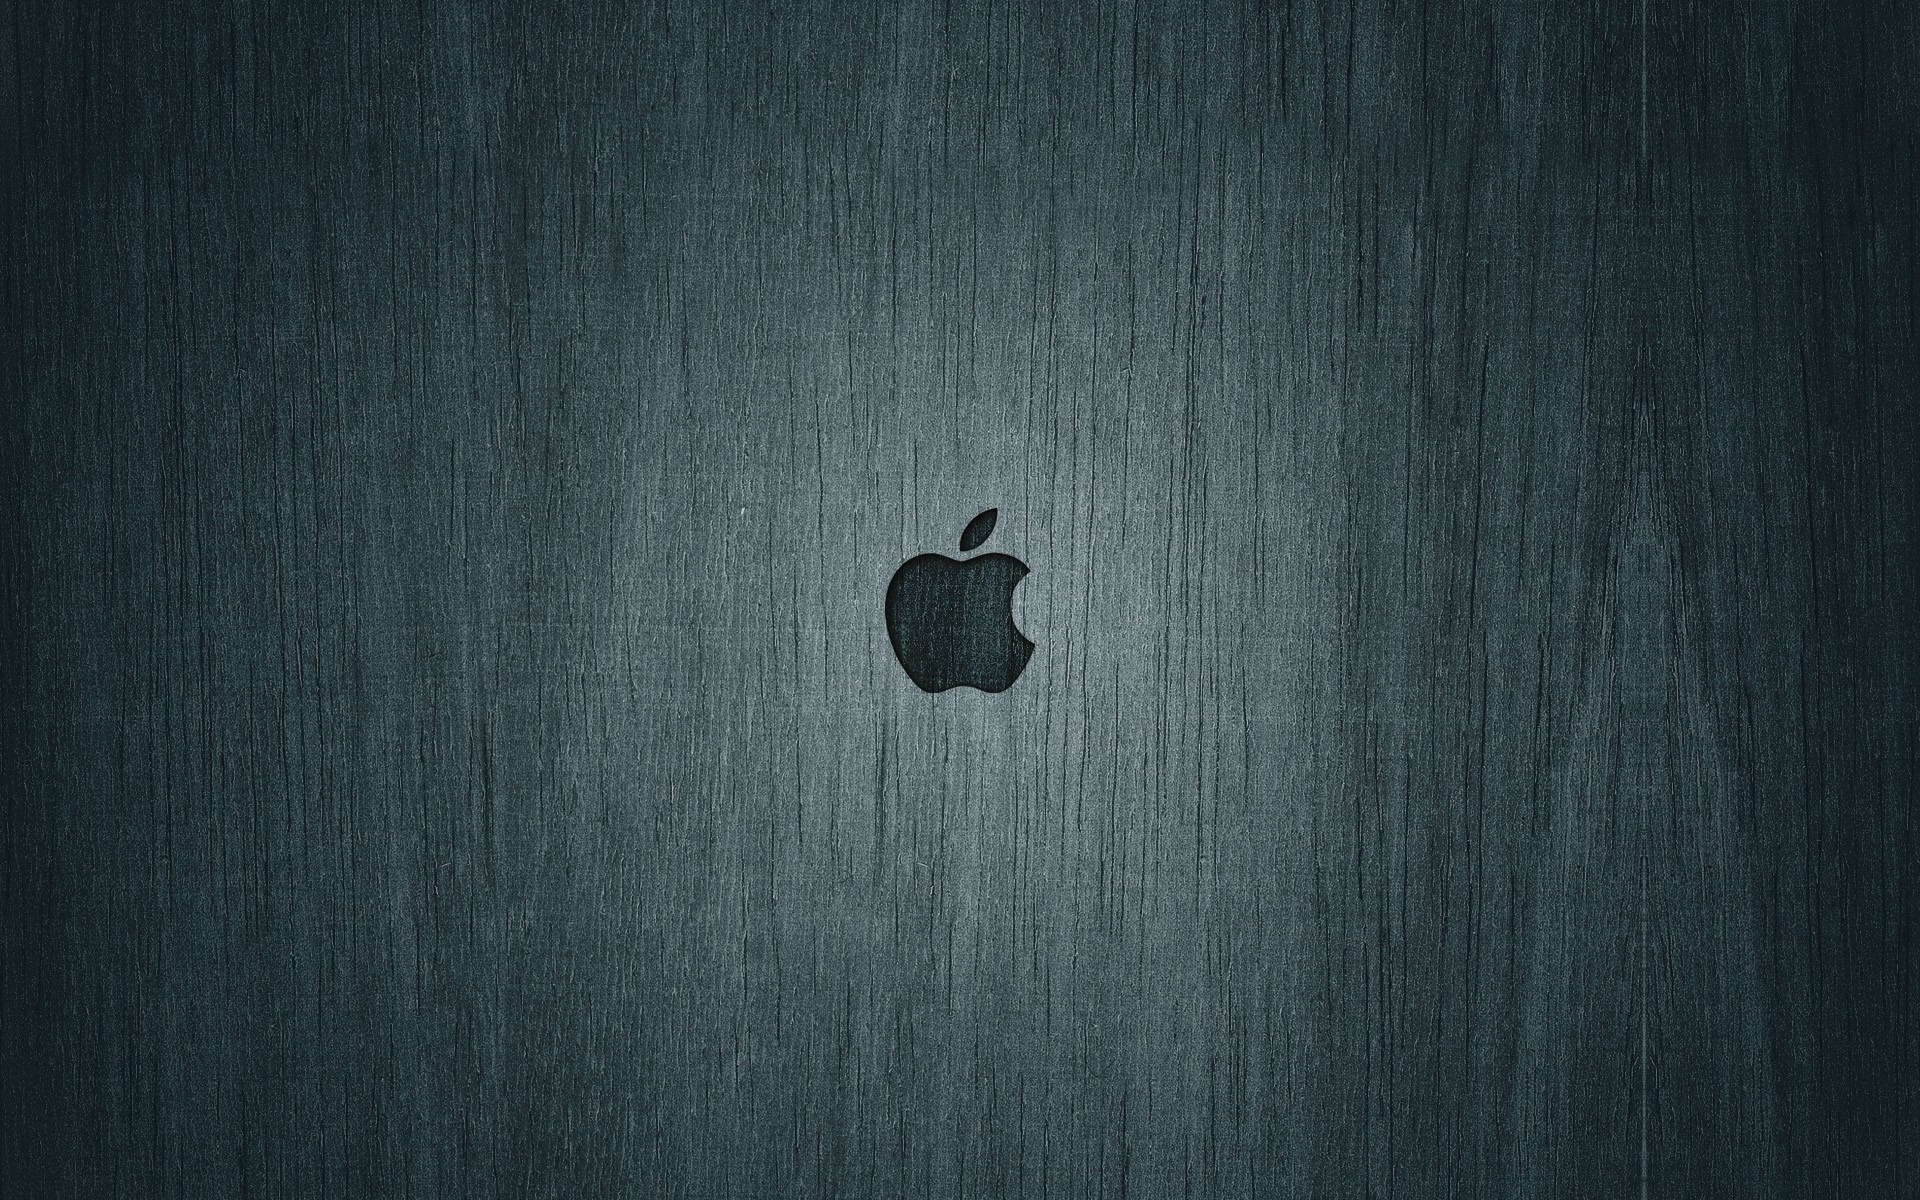 70 Apple Backgrounds ① Download Free Awesome Backgrounds For